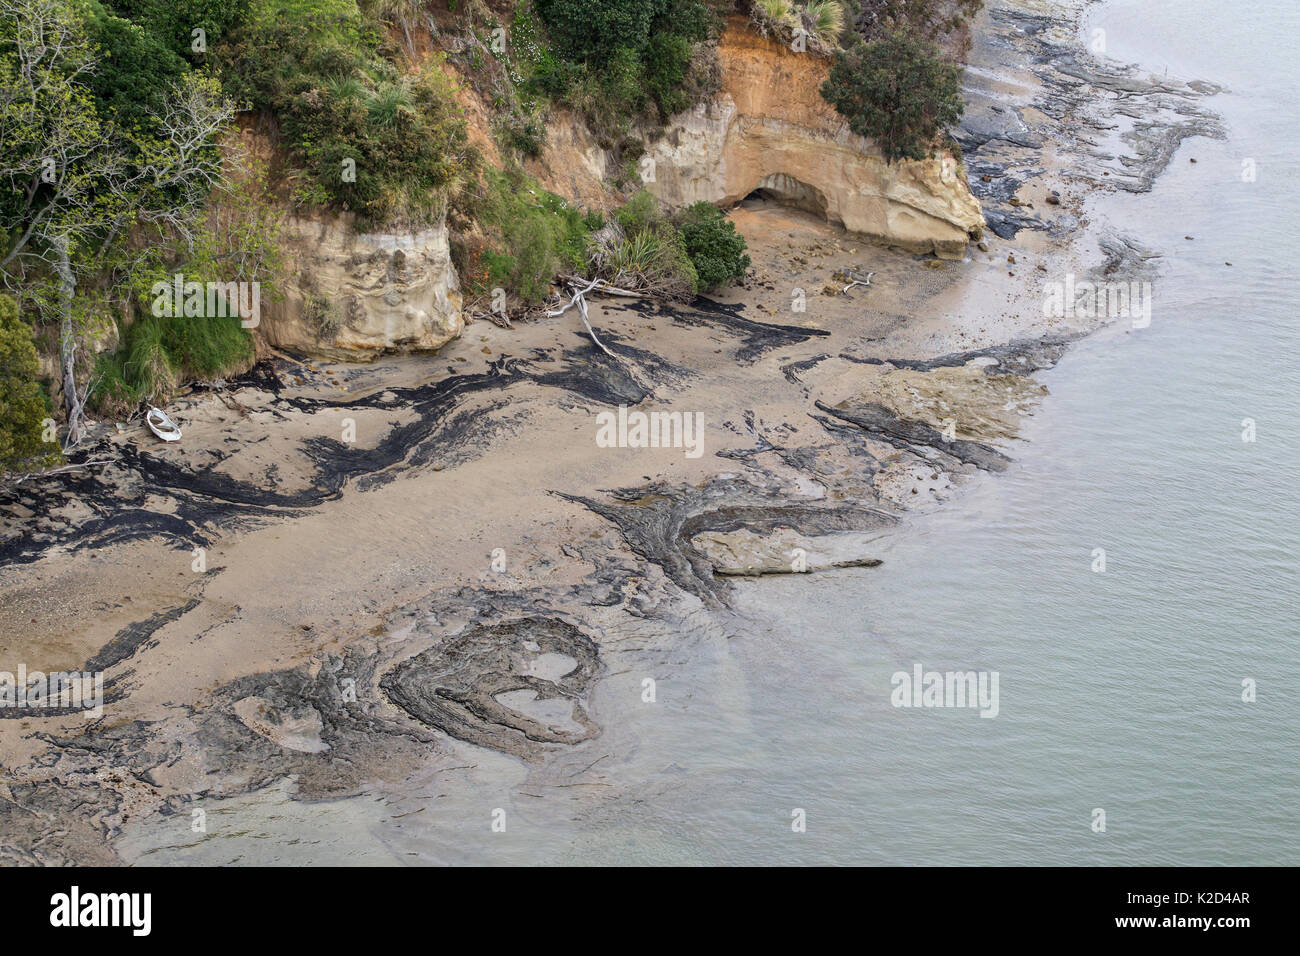 Aerial view of coast line with dark rocks and rowing boat, off Port of Tauranga, Tauranga, Bay of Plenty, New Zealand, October 2011. - Stock Image